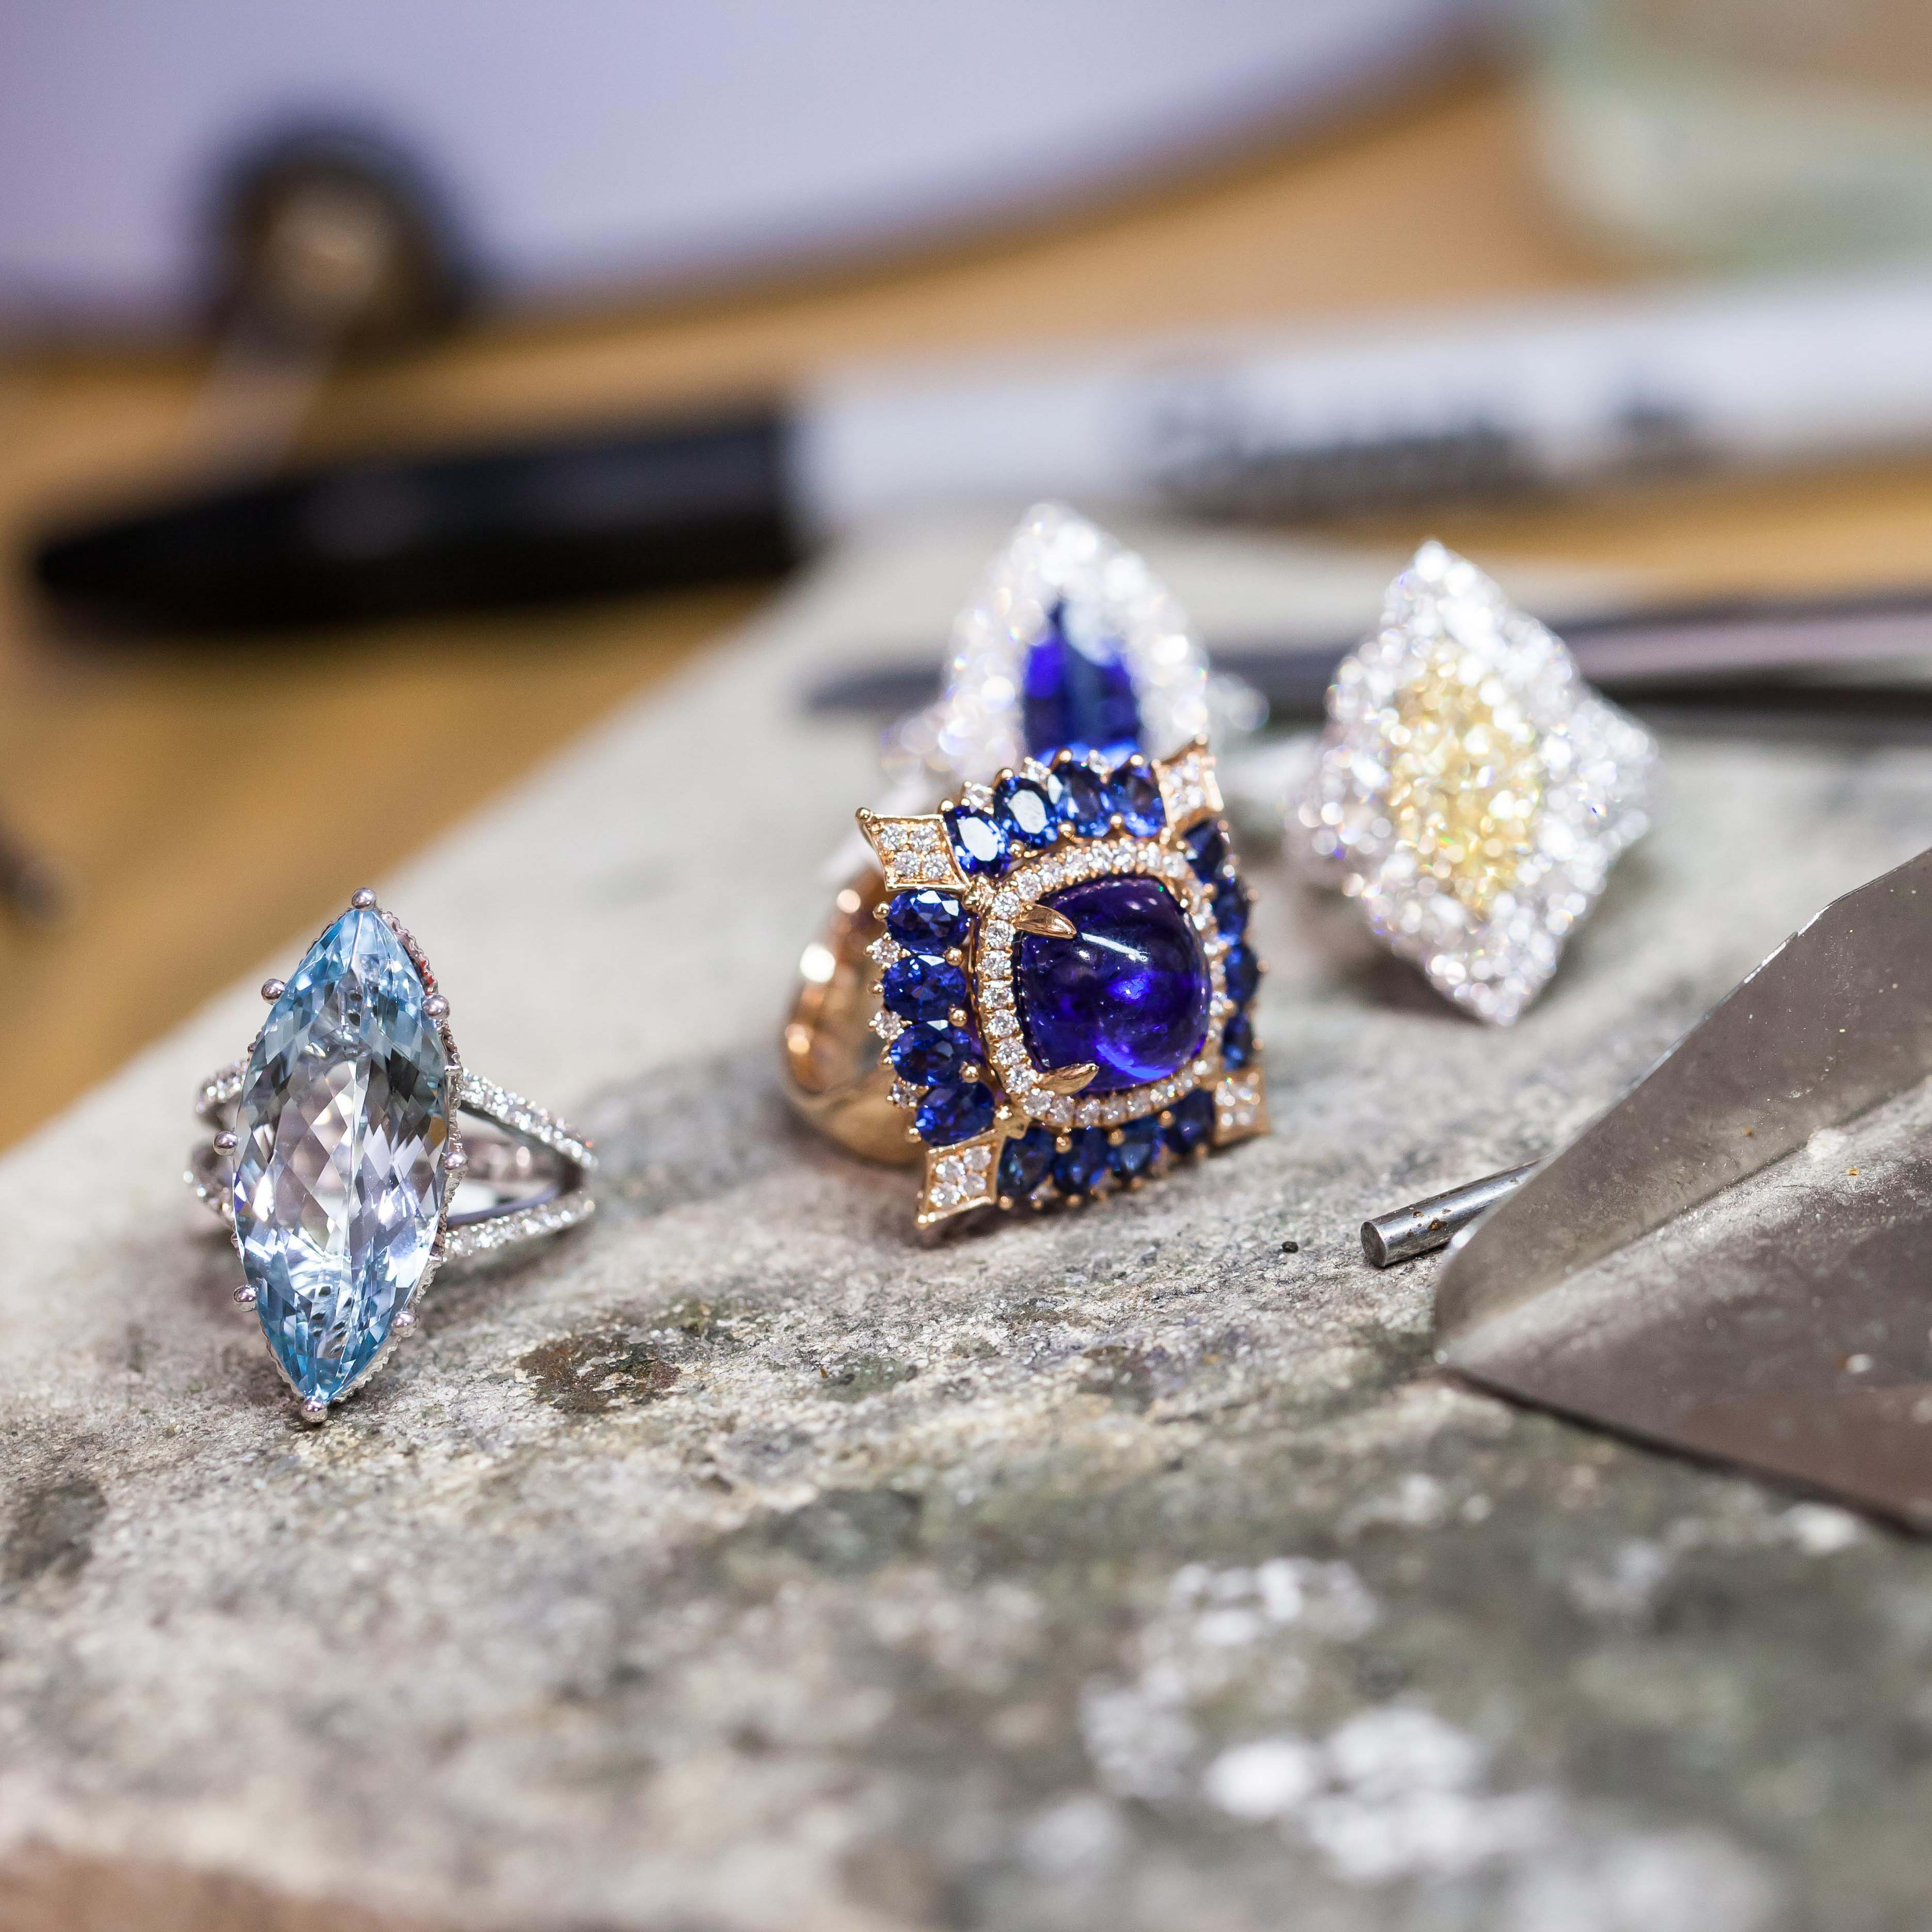 steven_stone_boutique_london_gemologue-jewelry_blog